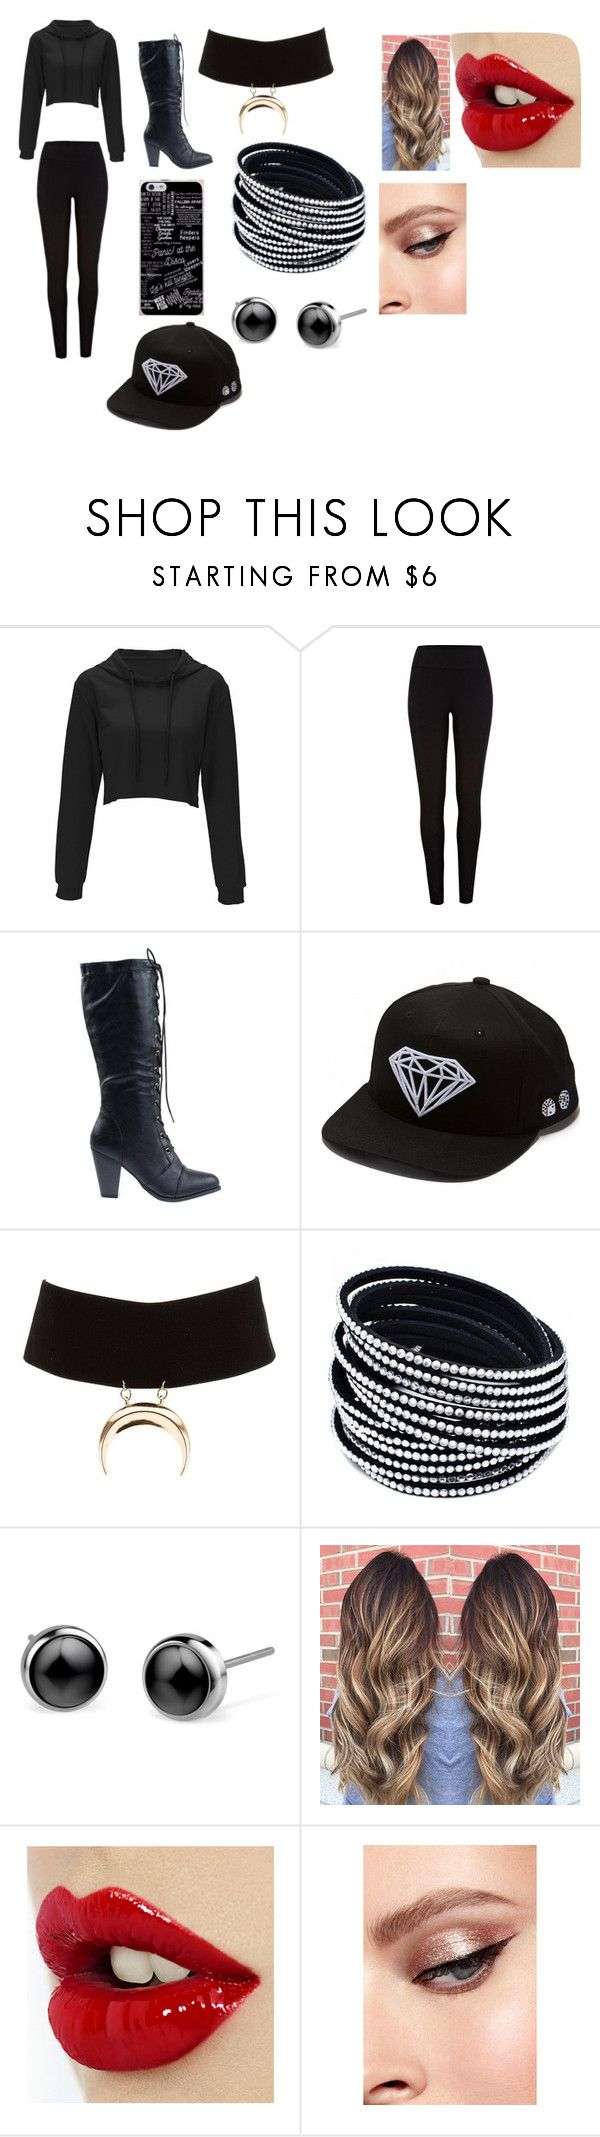 """""""Glmor"""" by ealtscheffel ❤ liked on Polyvore featuring River Island, Forever Link, Diamond Supply Co. and Charlotte Russe"""